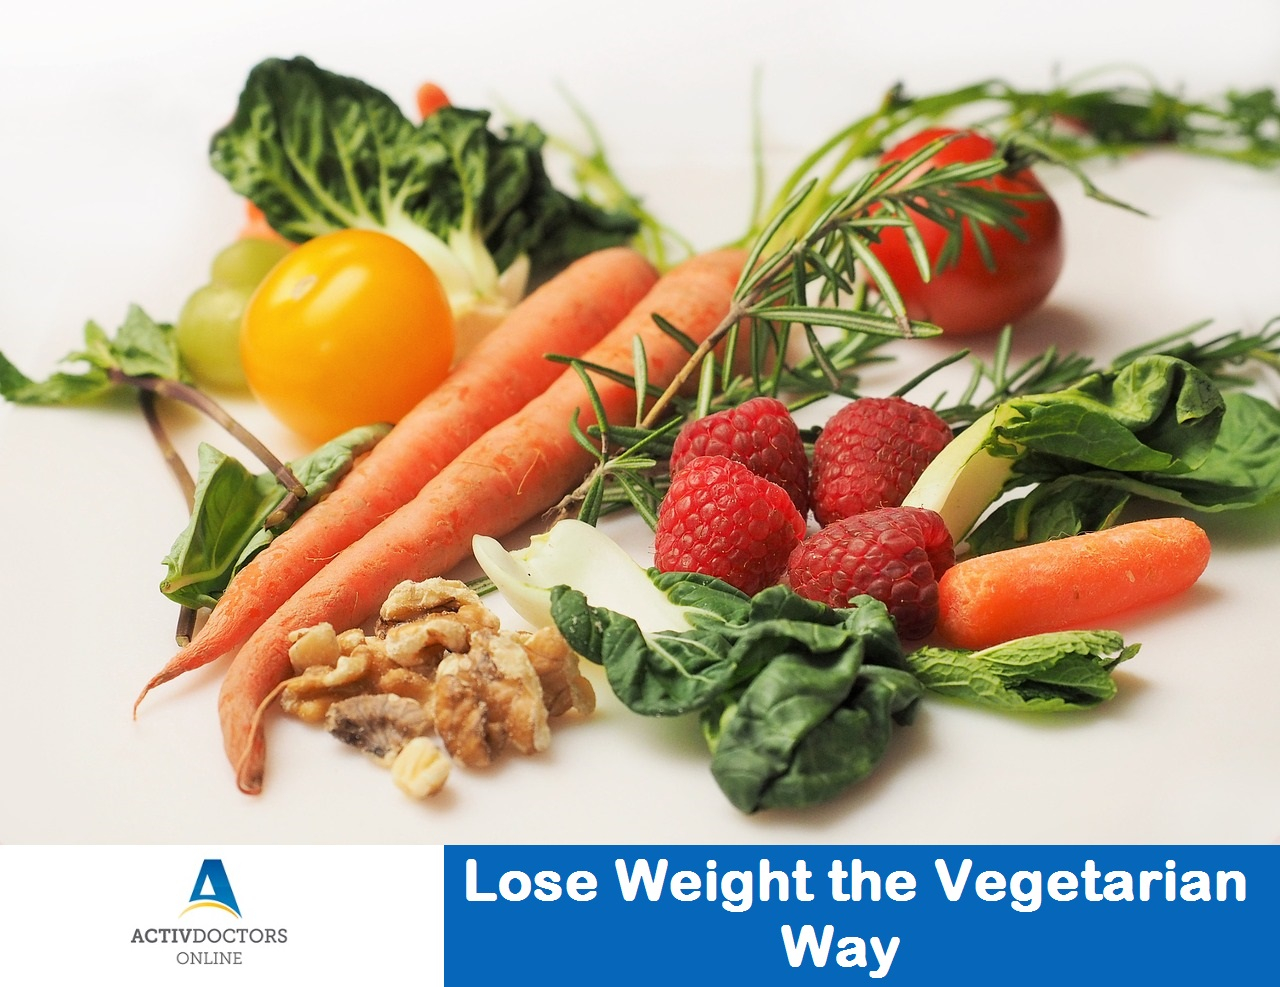 Lose Weight the Vegetarian Way